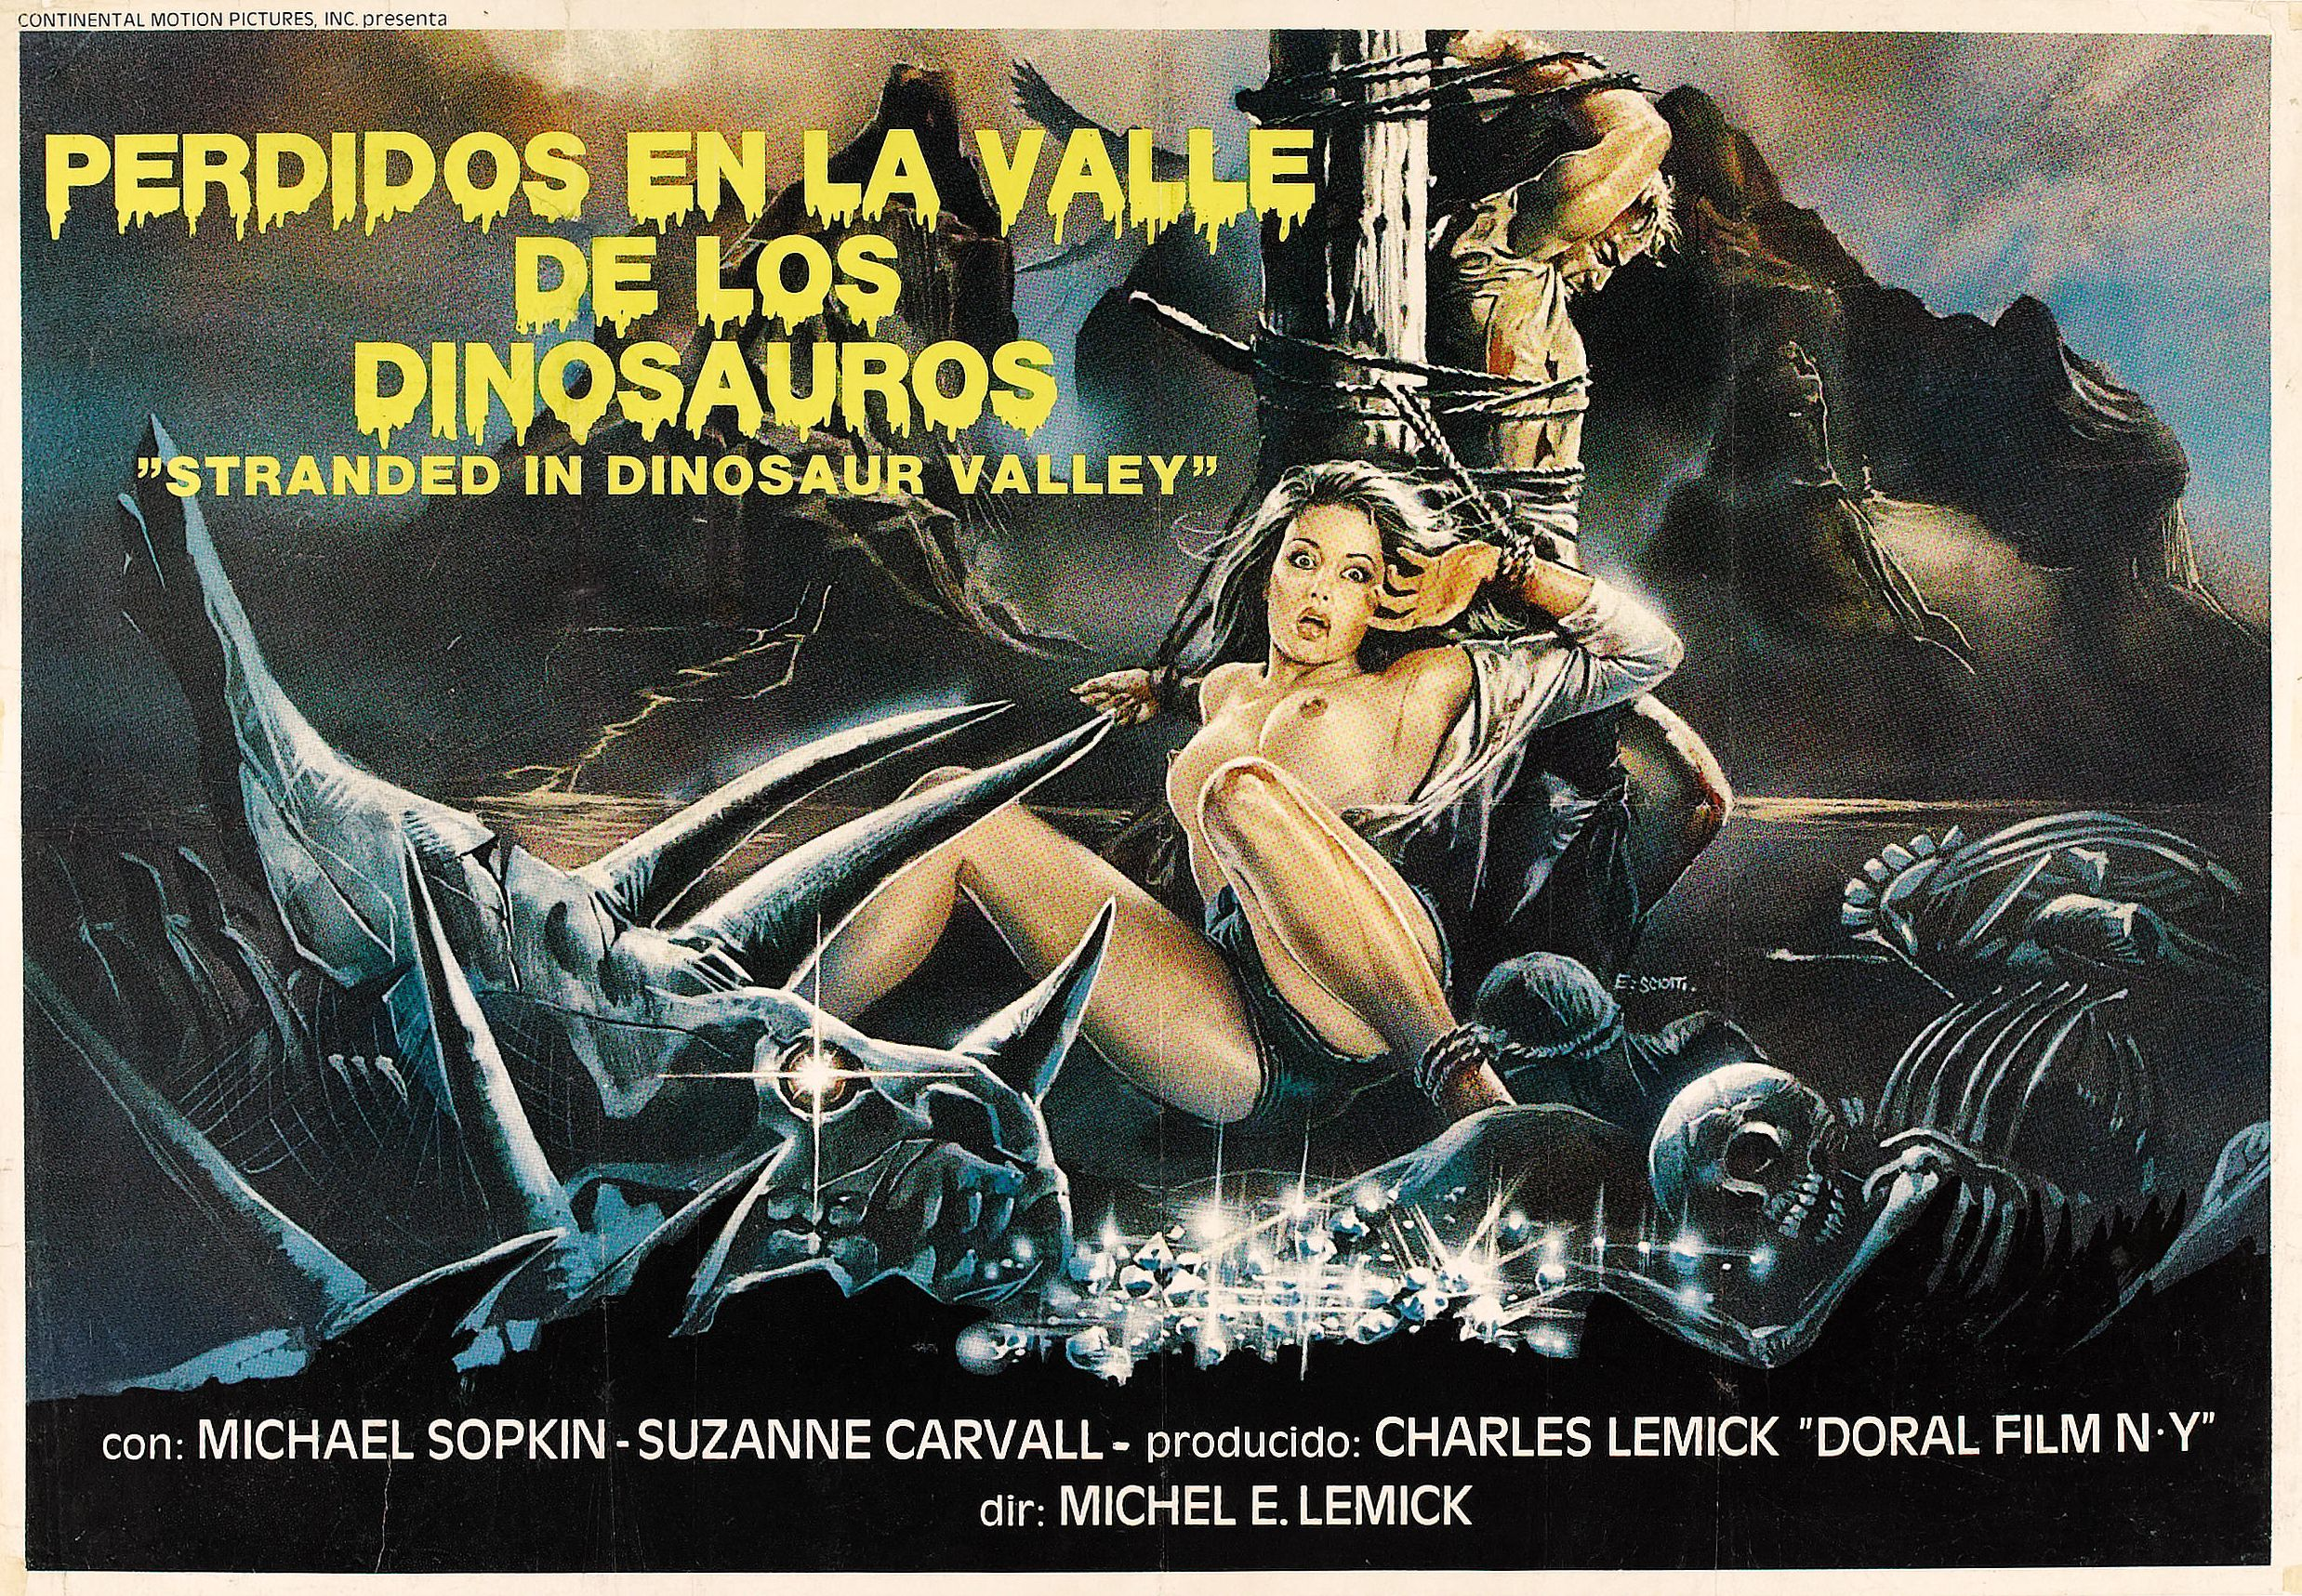 massacre_in_dinosaur_valley_poster_02.jpg.html